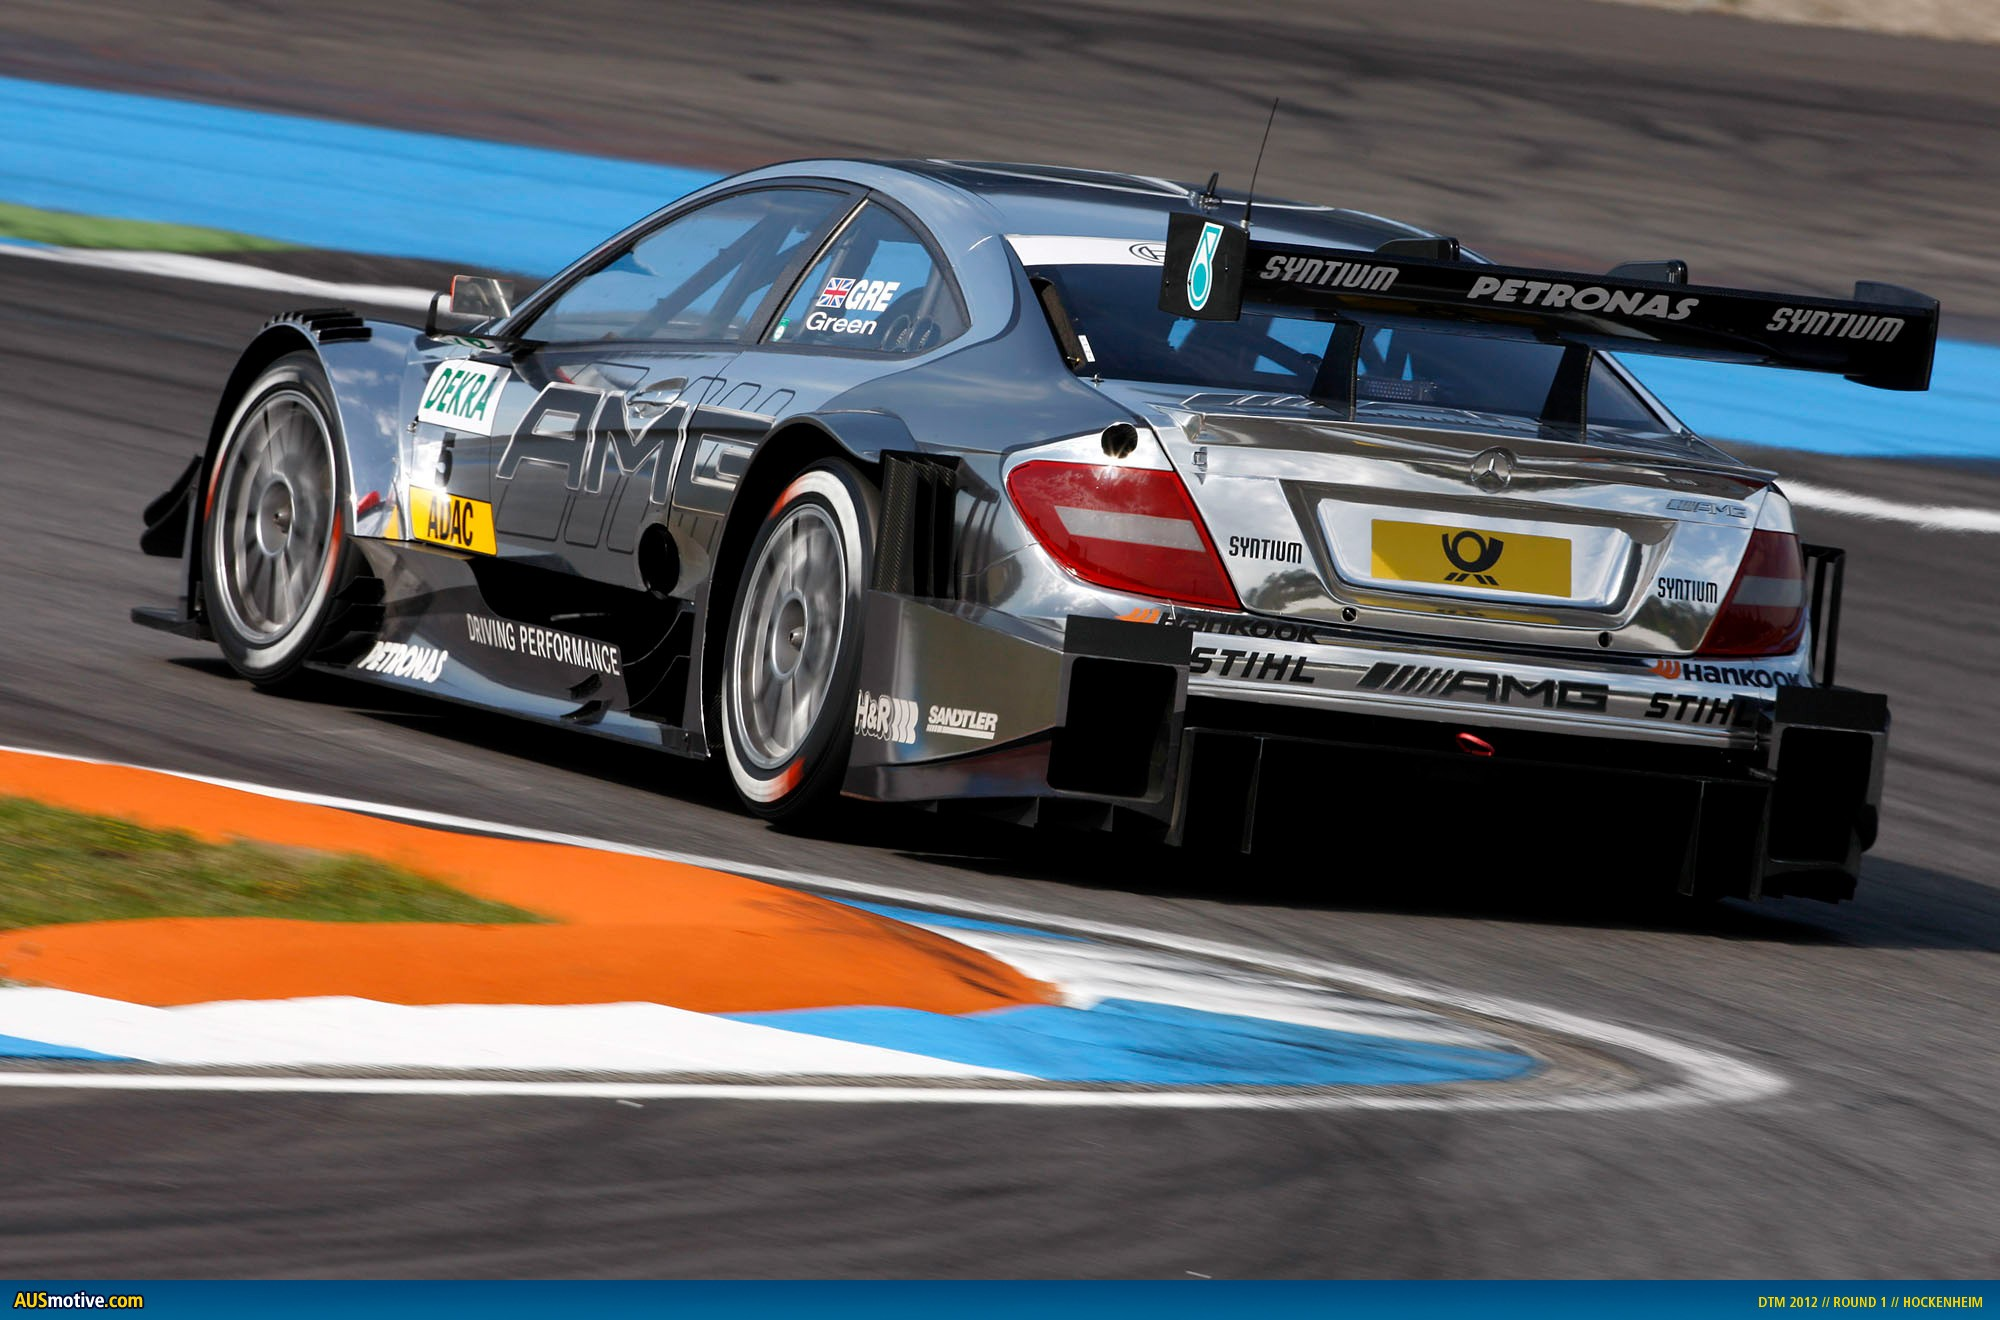 2012 DTM Hockenheim - Mercedes - Green